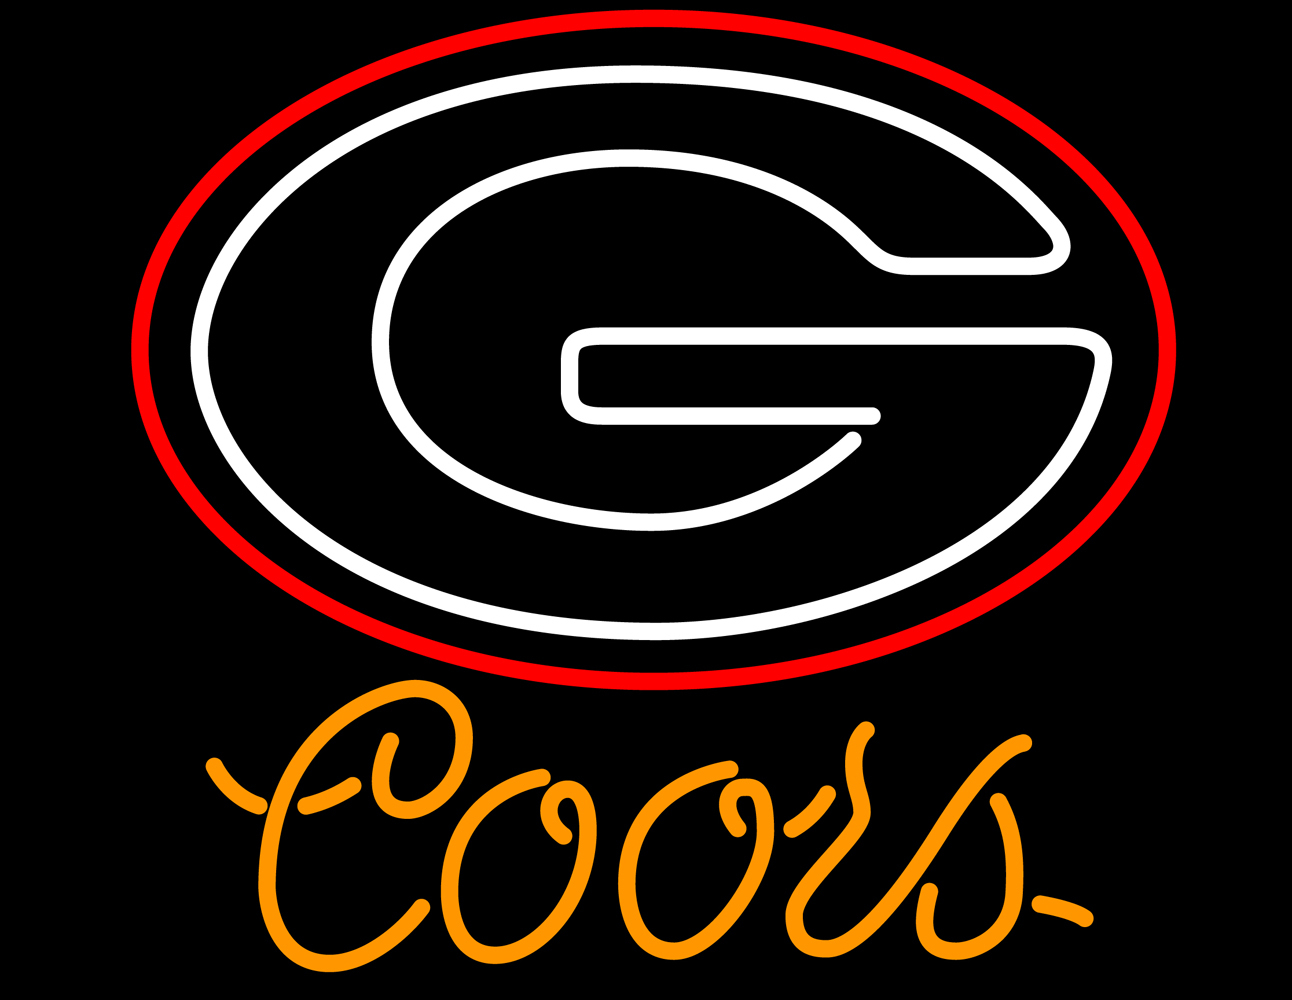 Coors NCAA University of Georgia Neon Sign